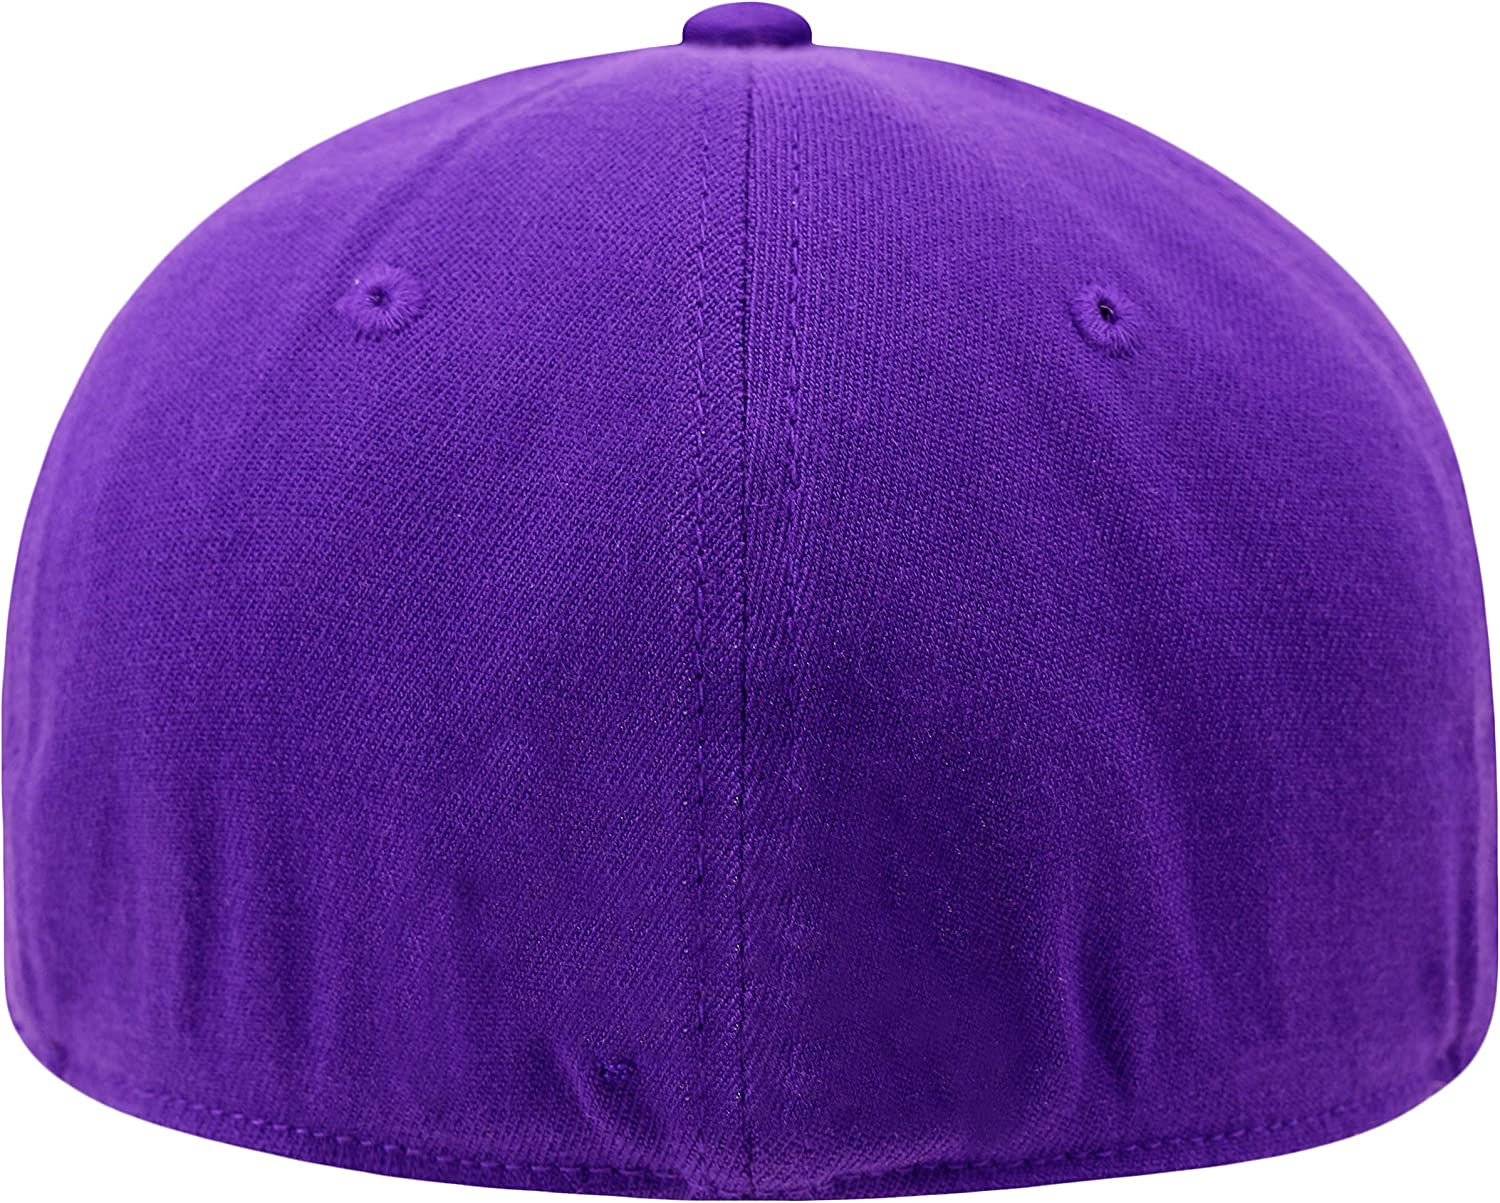 Top of the World Men's Premium Fit One Memory Hat Collection Direct store Oakland Mall Tea